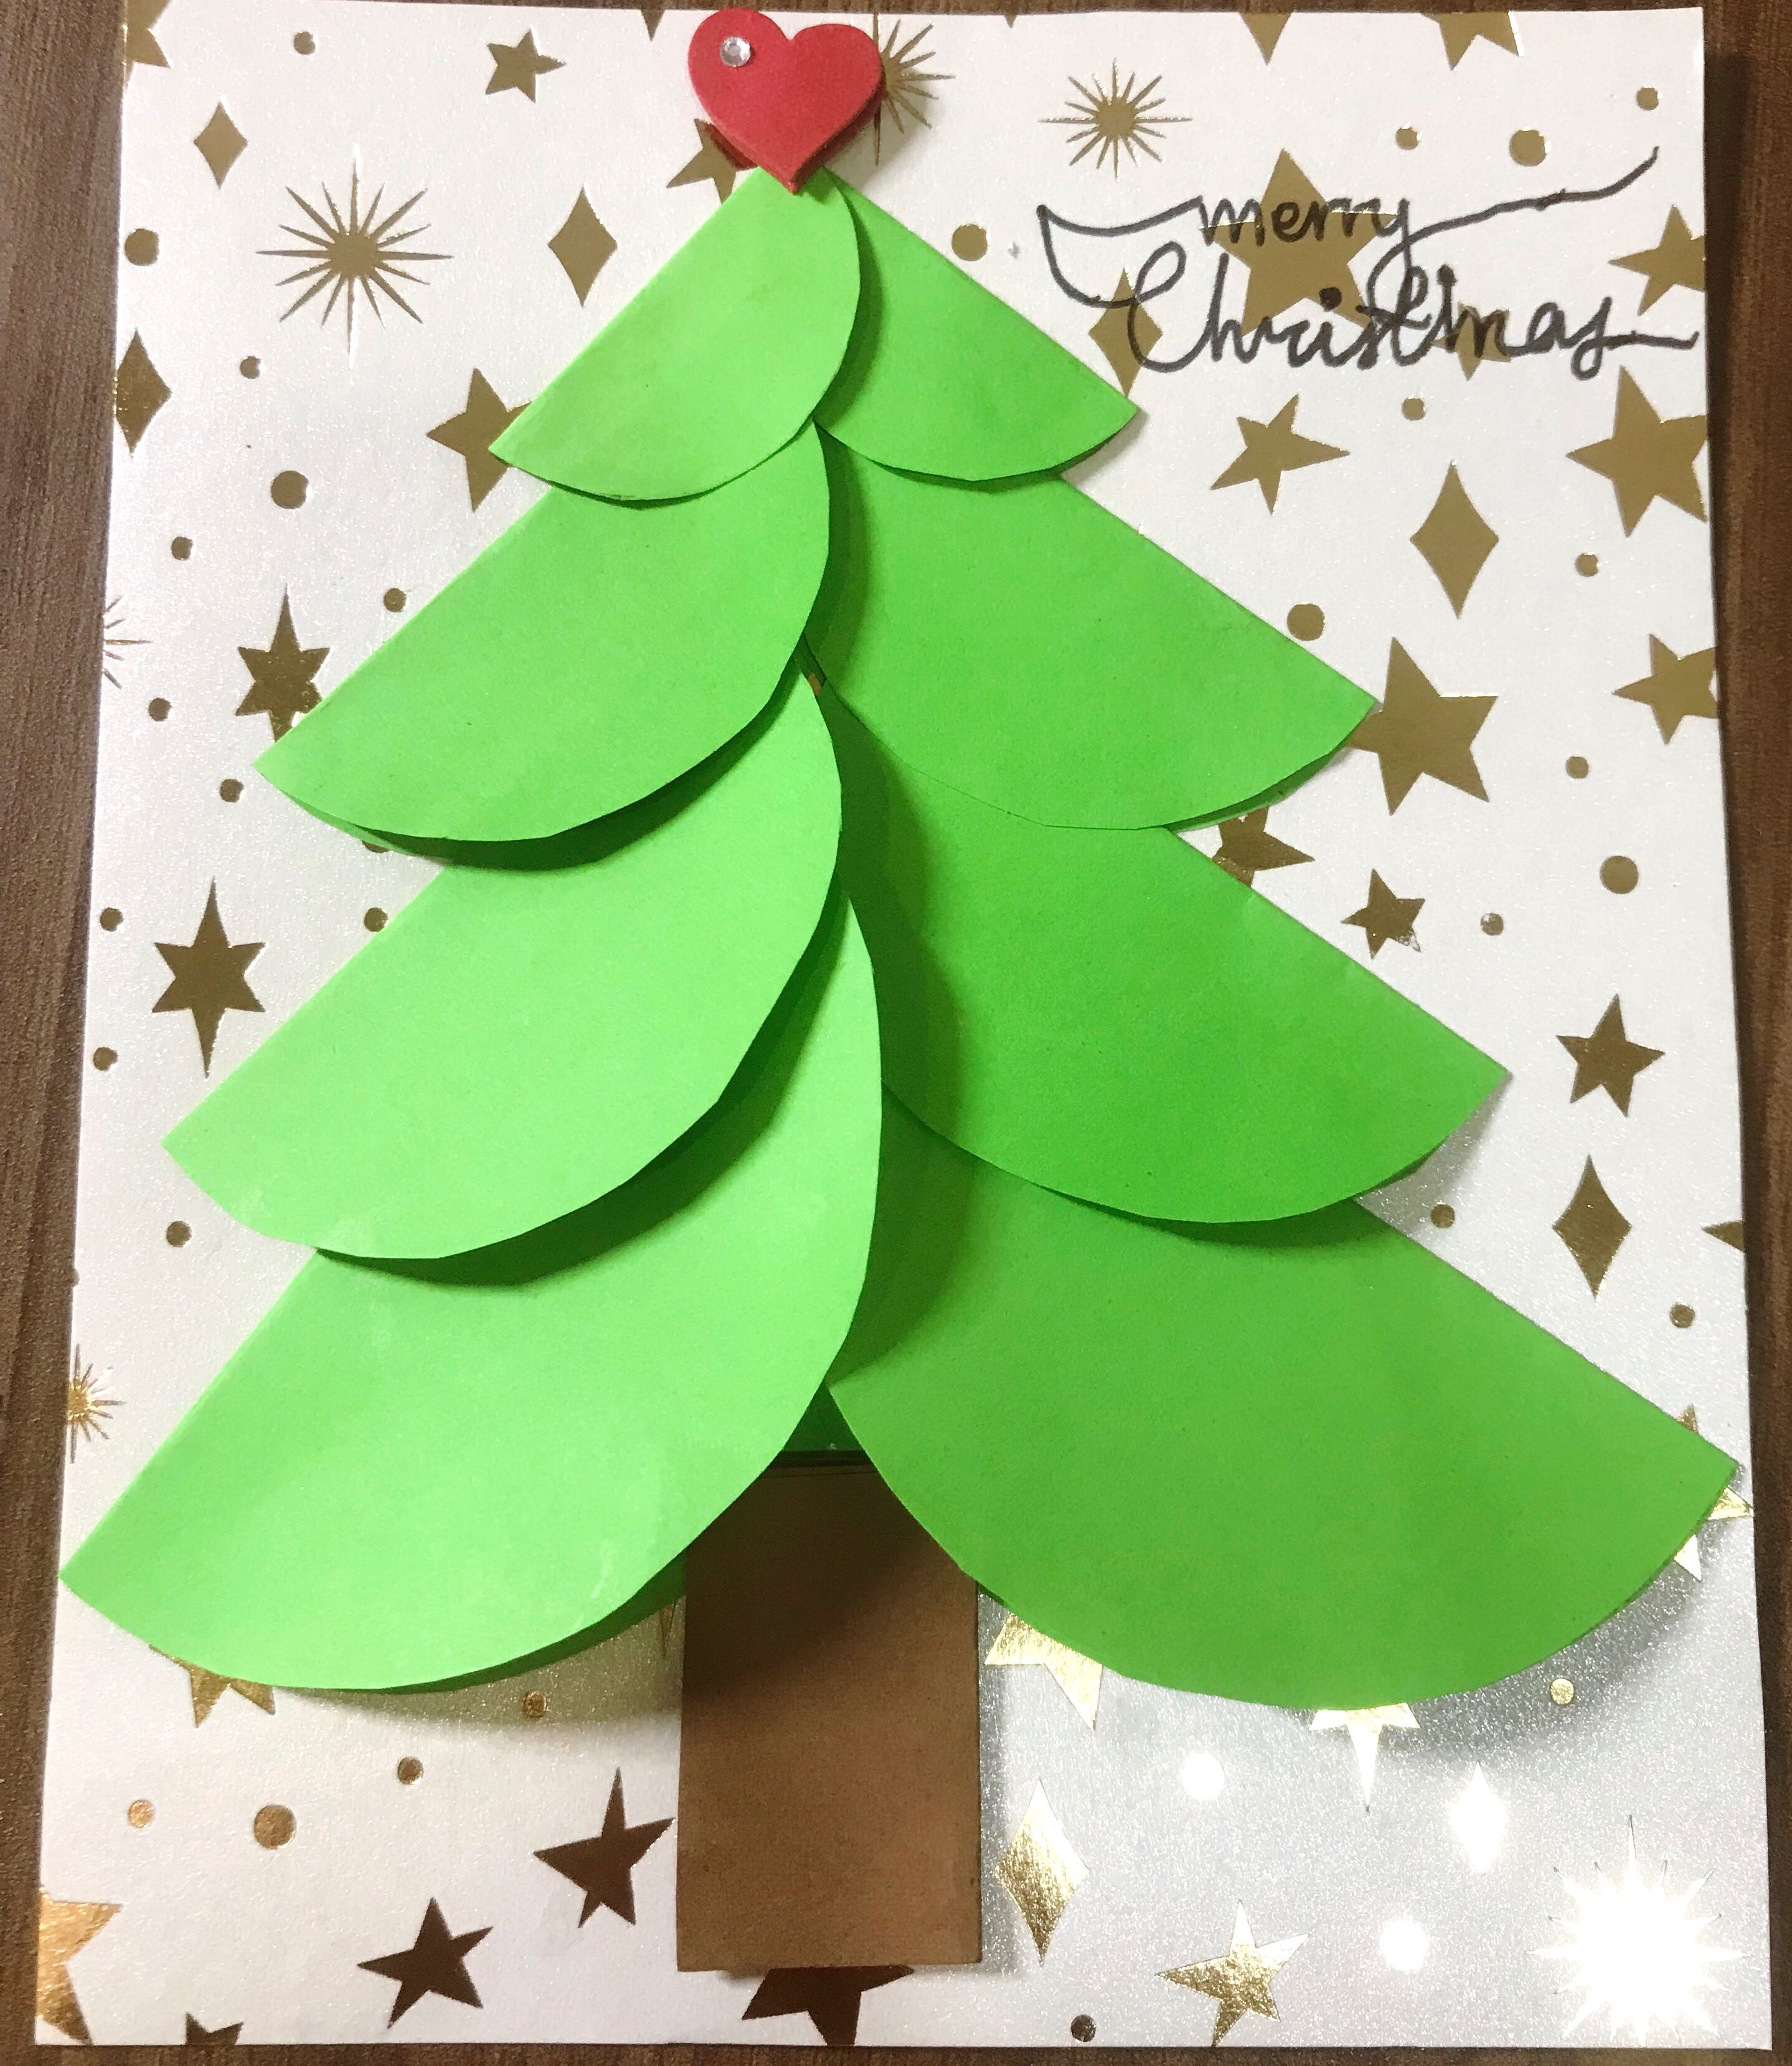 3d Handmade Christmas Cards Design Craft Handmade Craft On